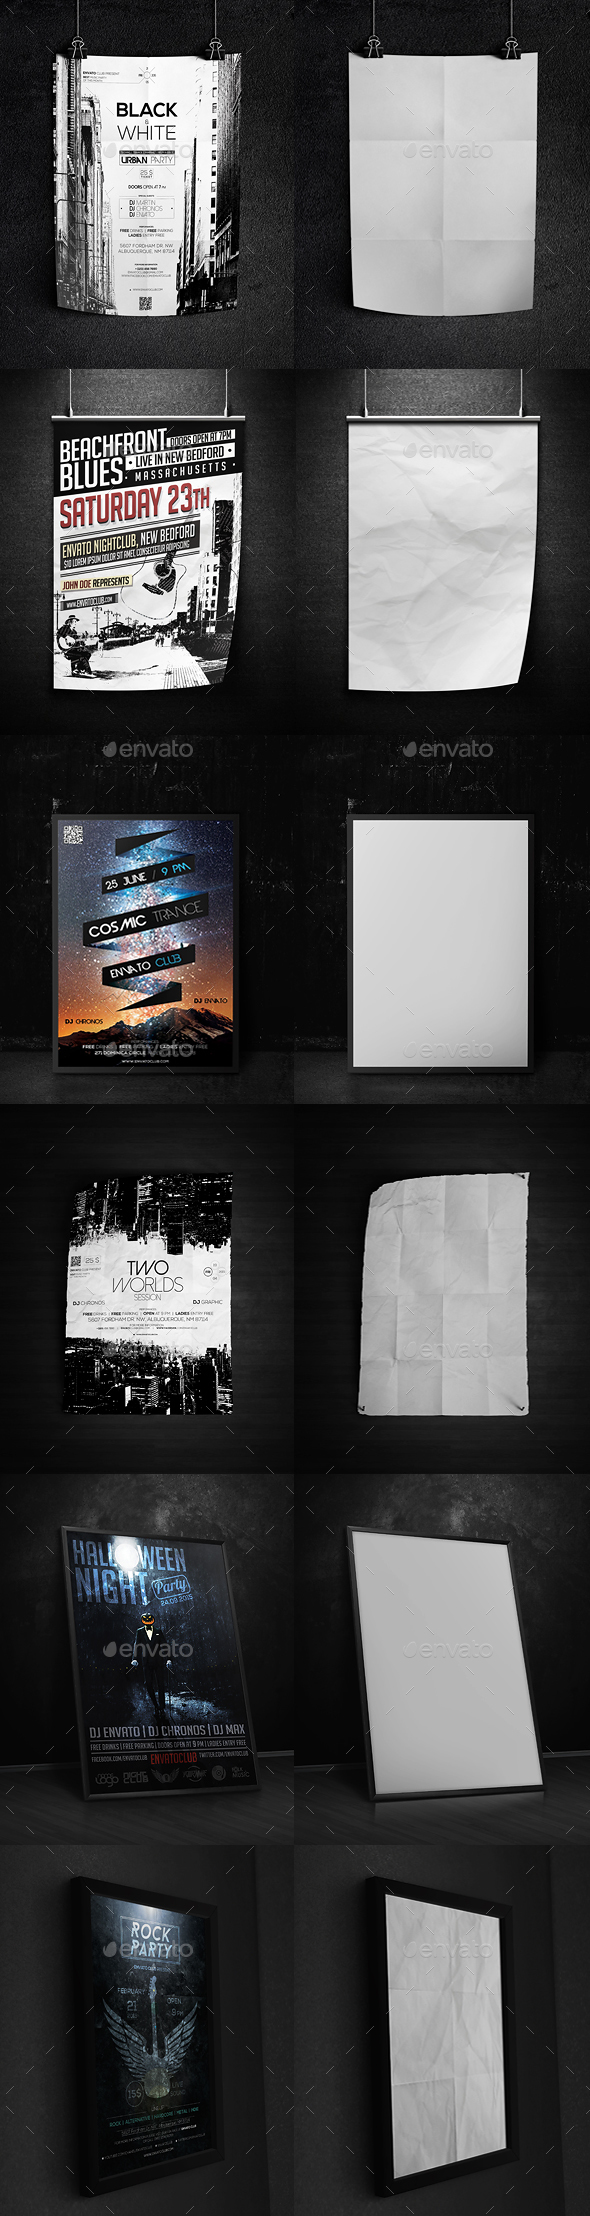 Dark Poster Mock-Up - Posters Print